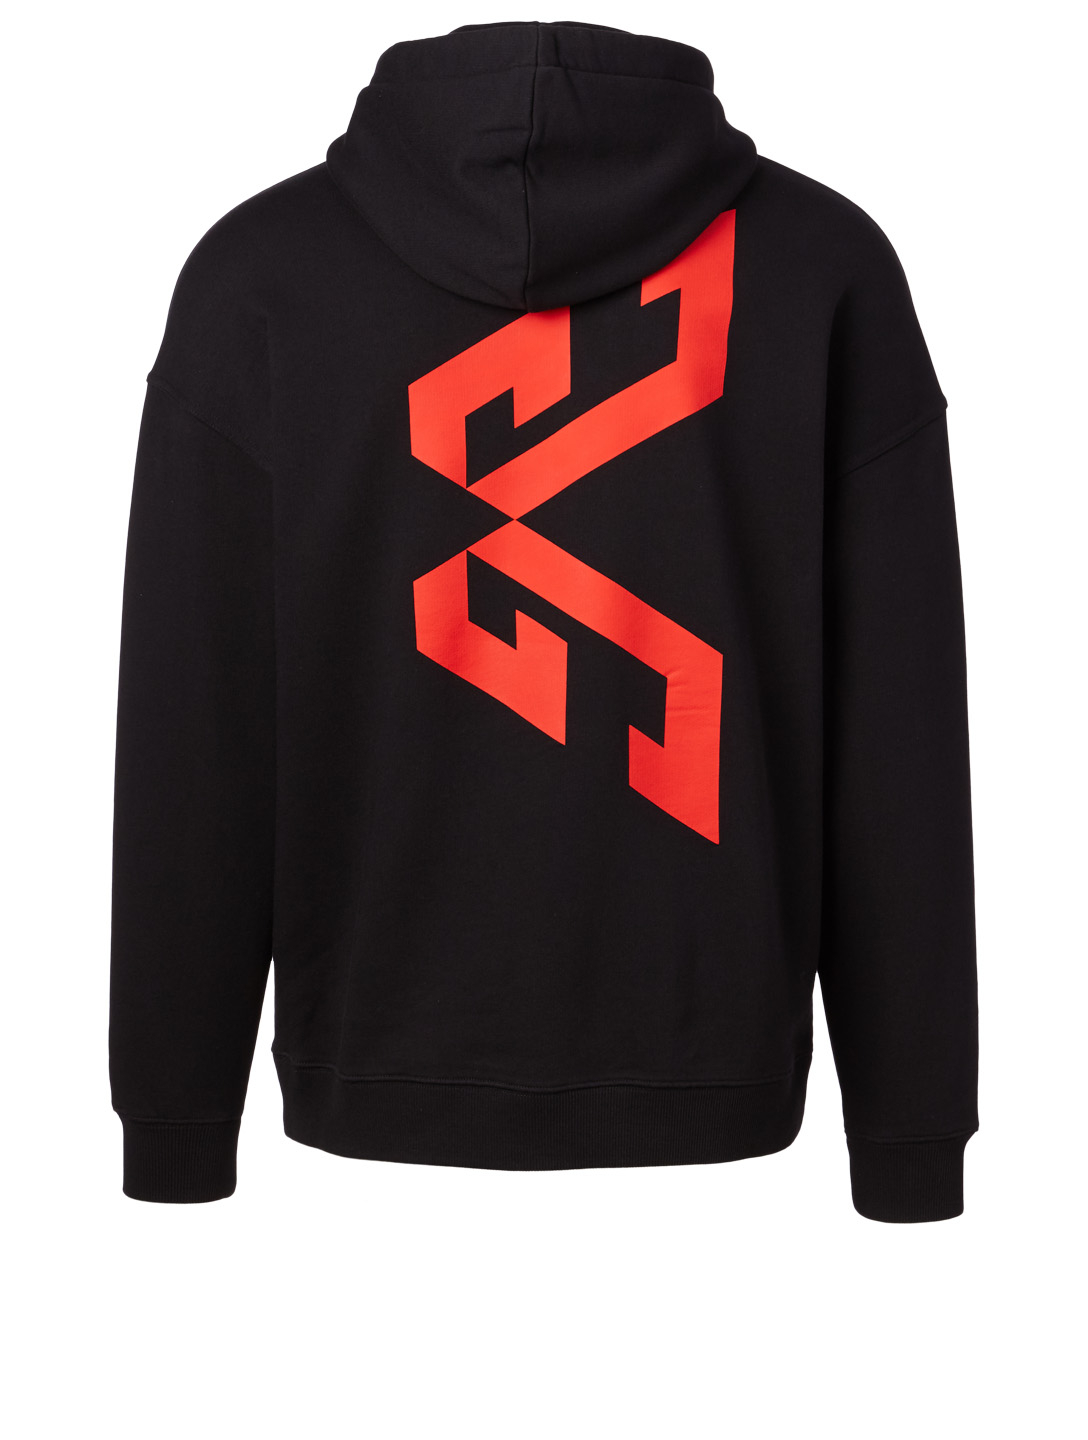 GIVENCHY Cotton Graphic Hoodie Designers Black